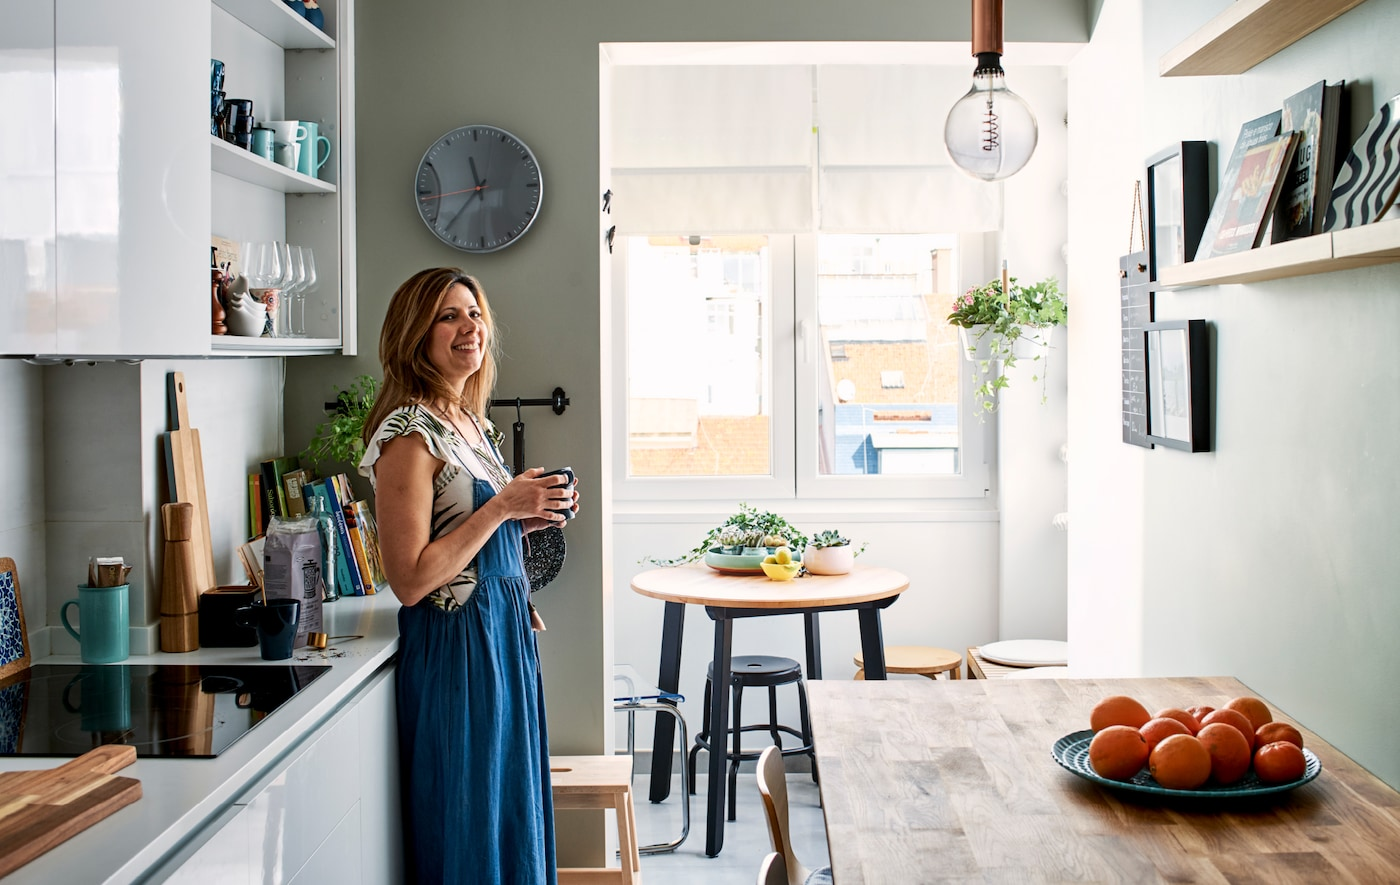 A woman stands in a galley-shaped kitchen with white door fronts, a wooden bar table and small dining area at one end.